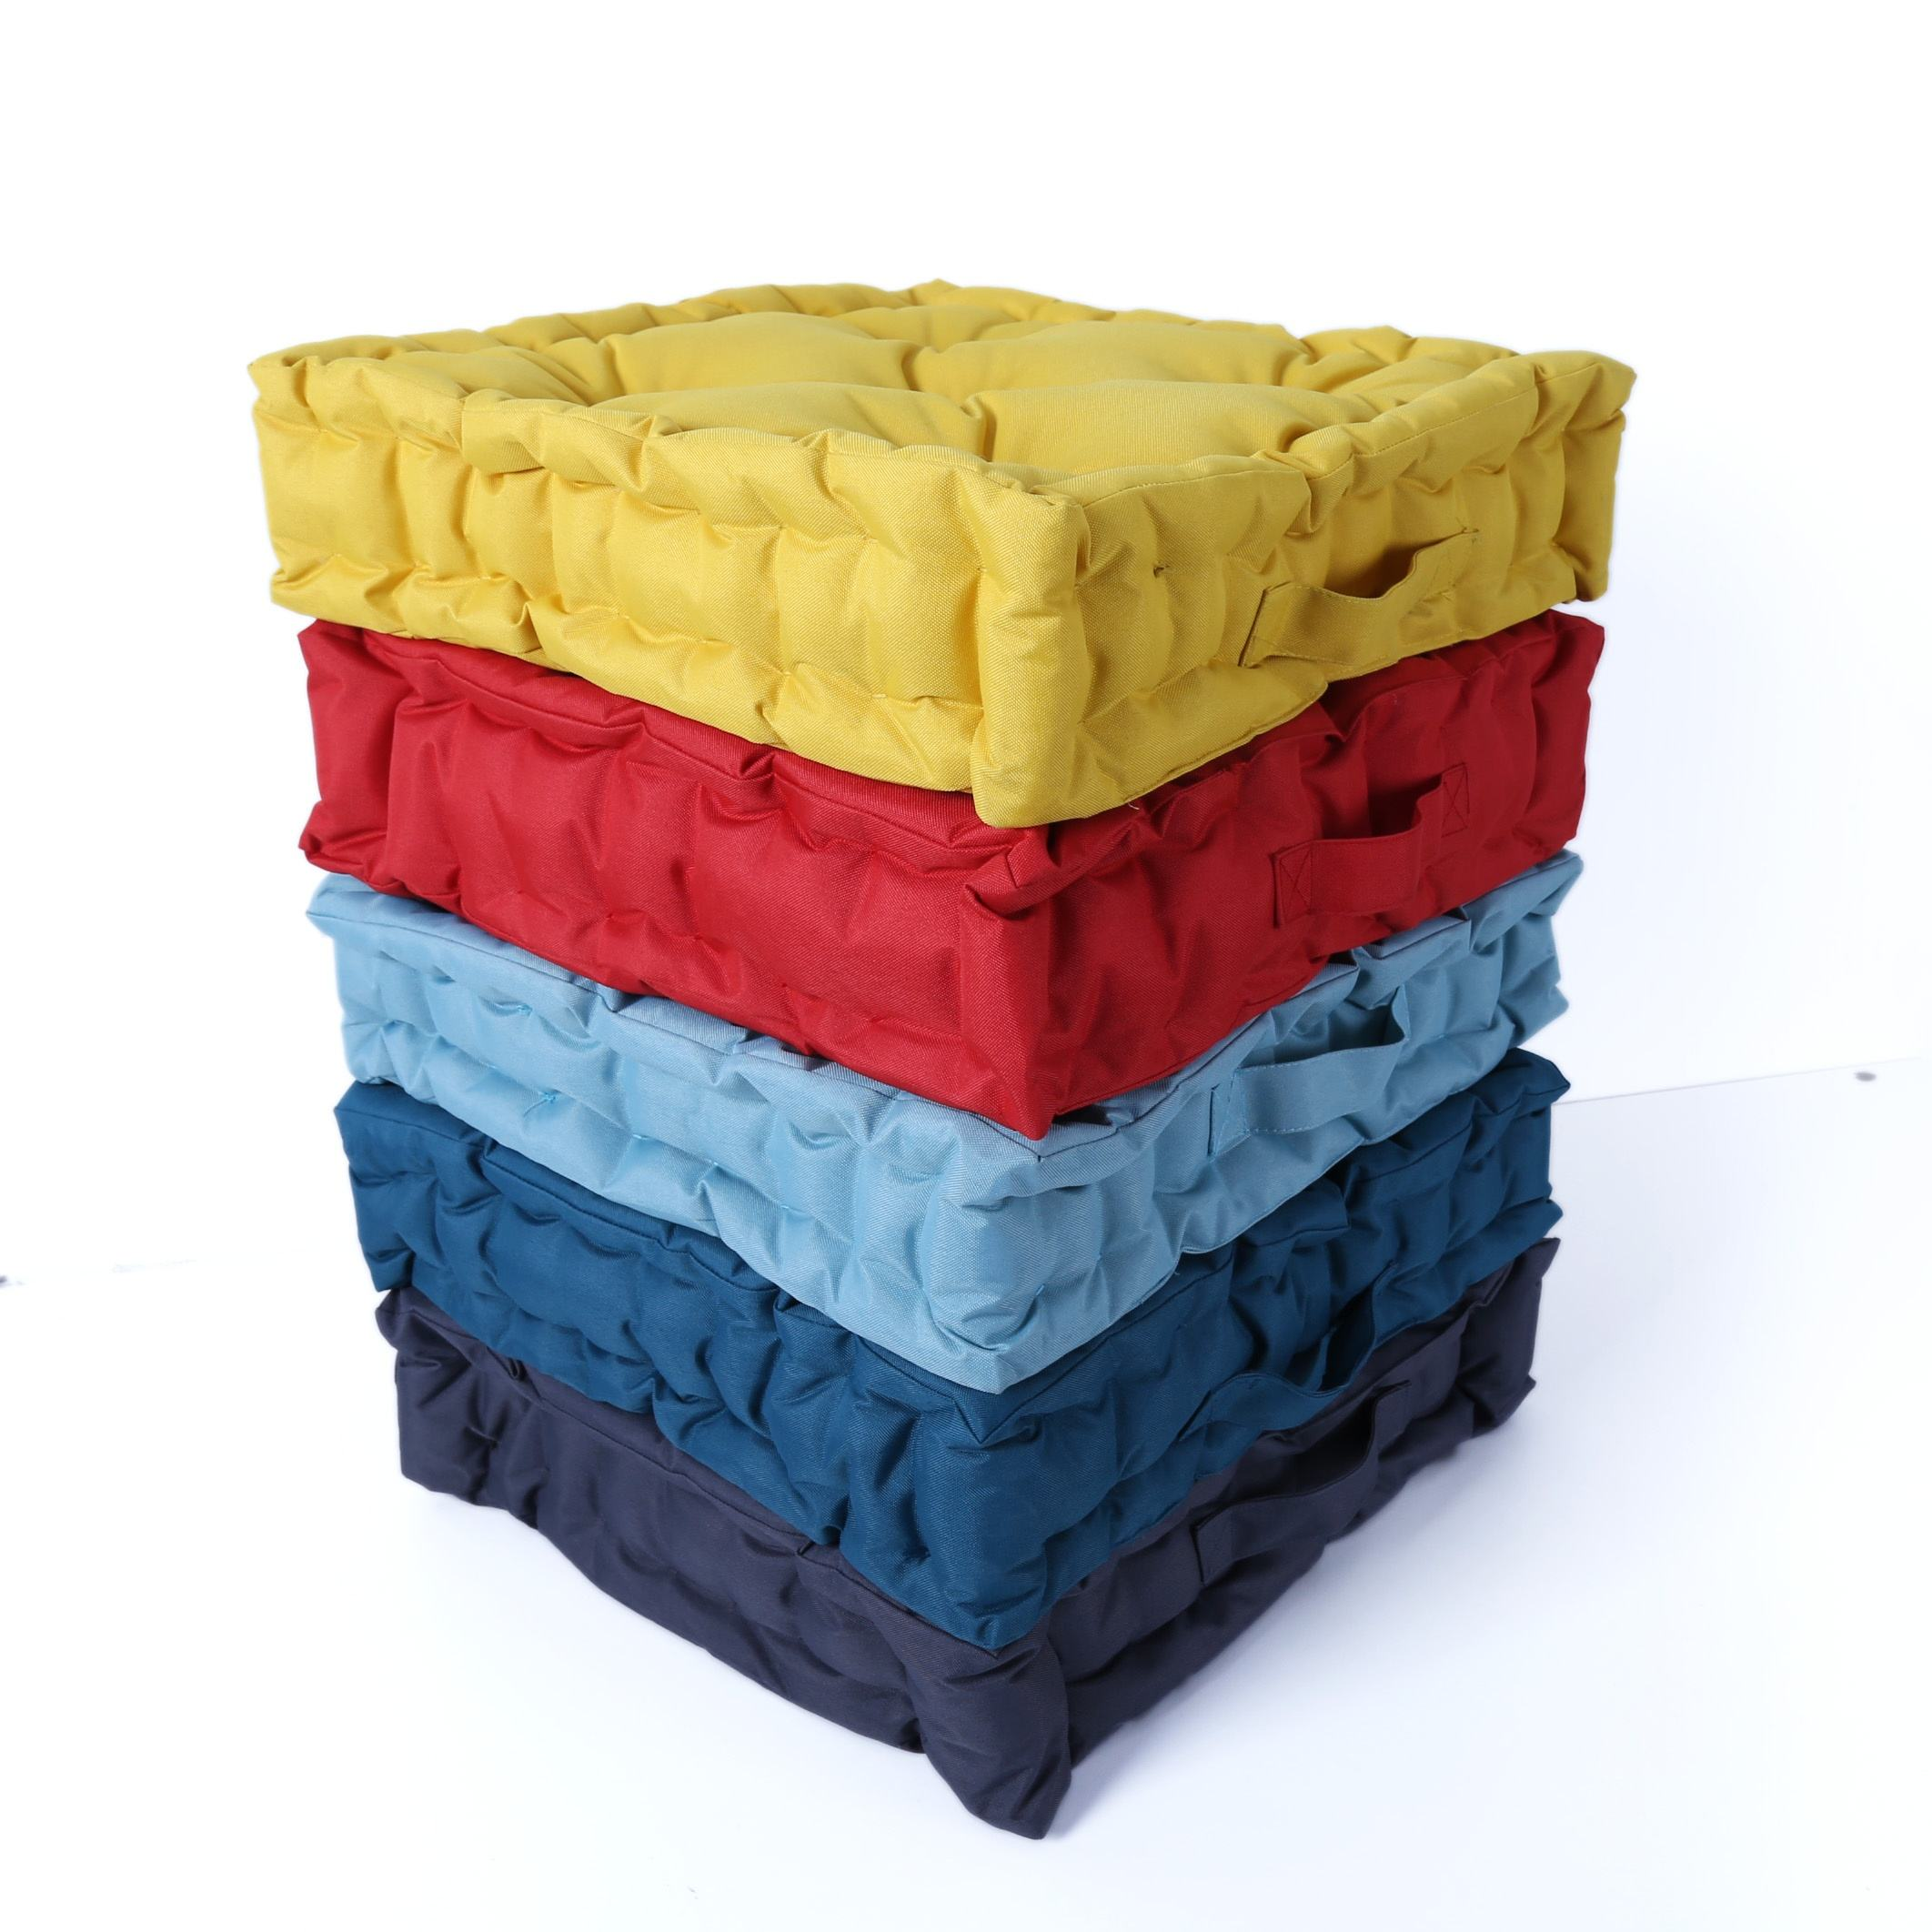 100% Polyester Japanese style soft and comfortable square woven chair pad dining floor cushion